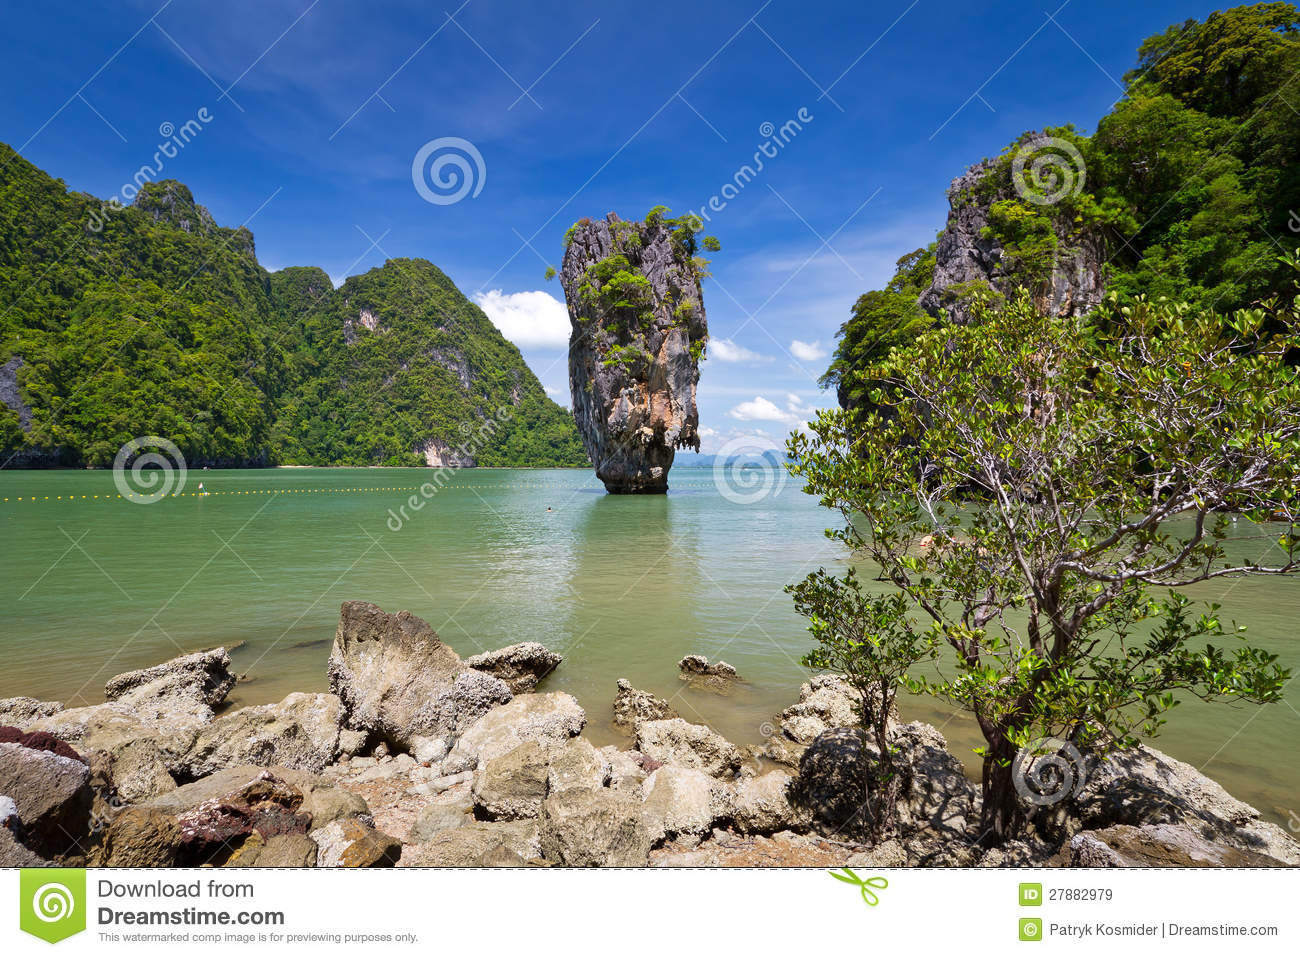 Khao Phing Kan clipart #13, Download drawings